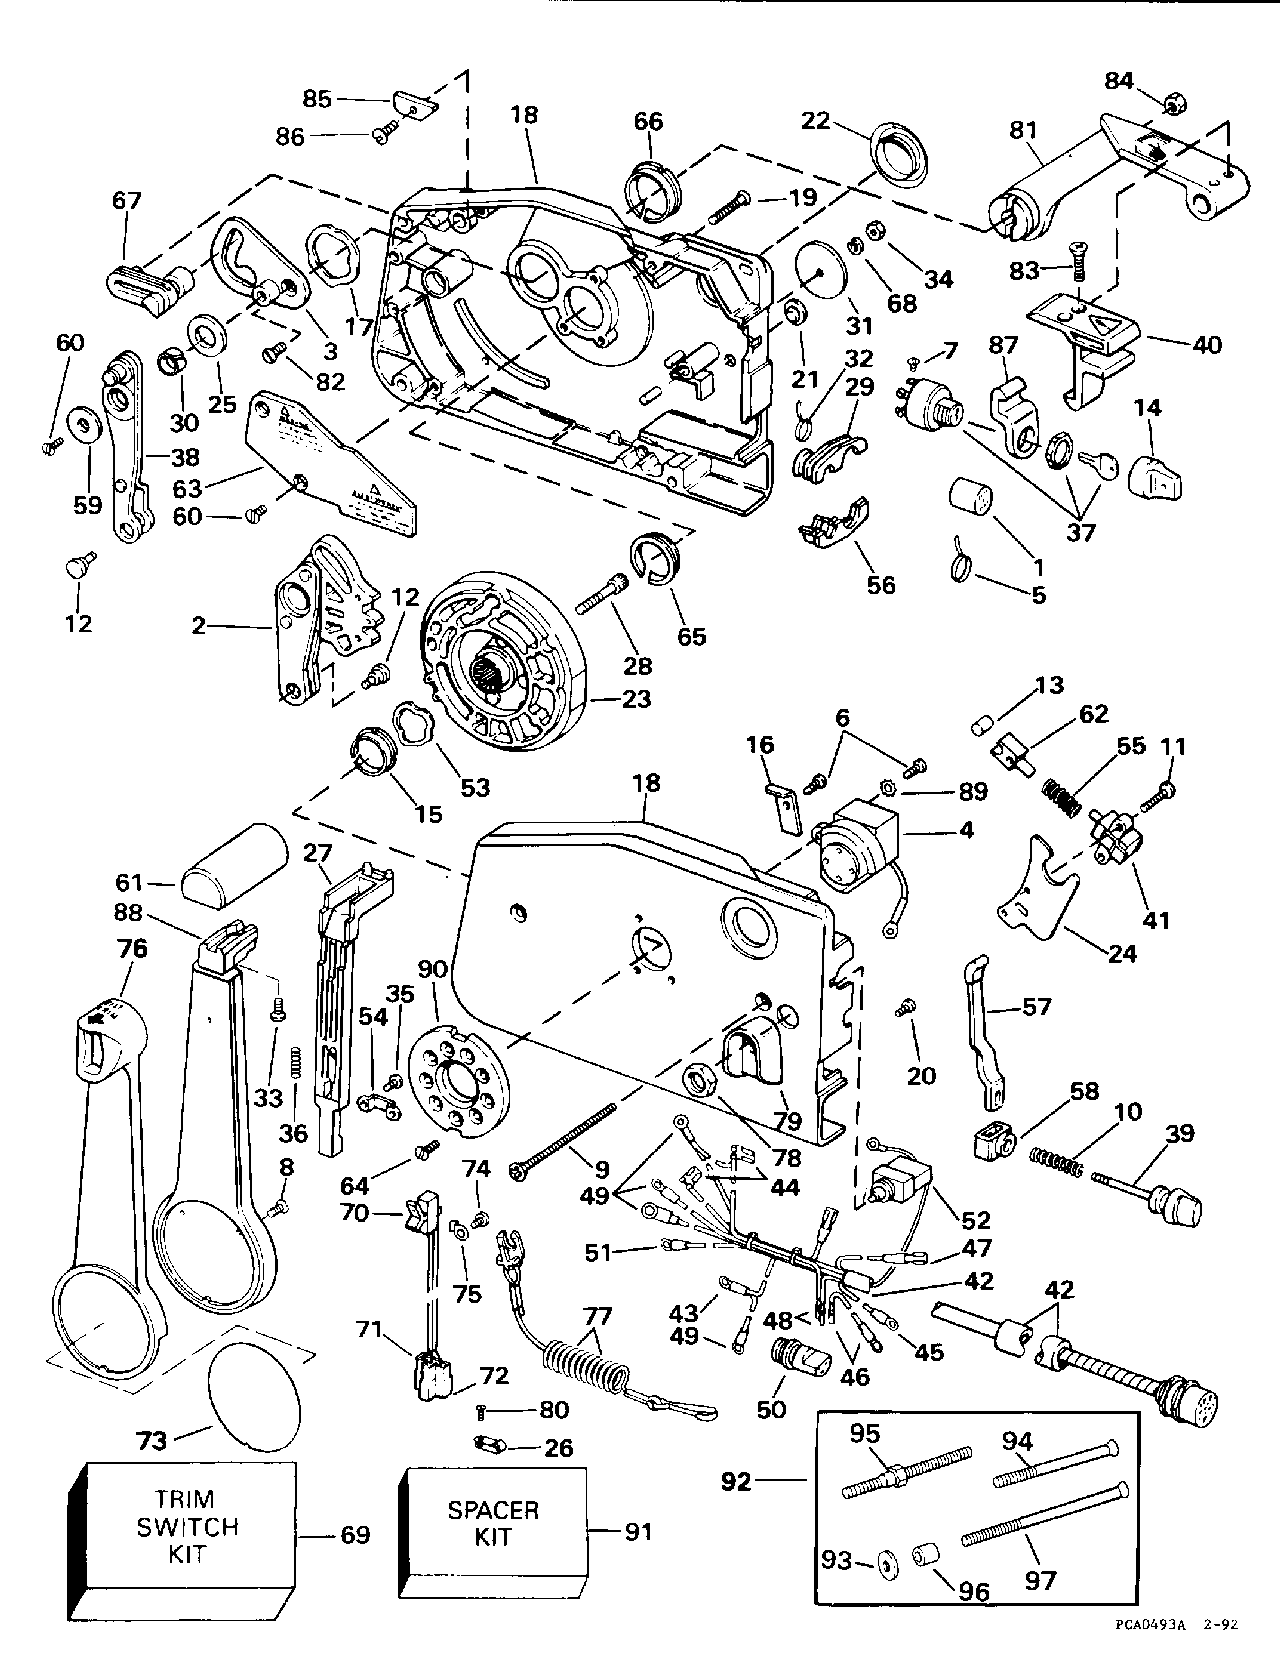 Diagram 70 Hp Evinrude Wiring Diagram Full Version